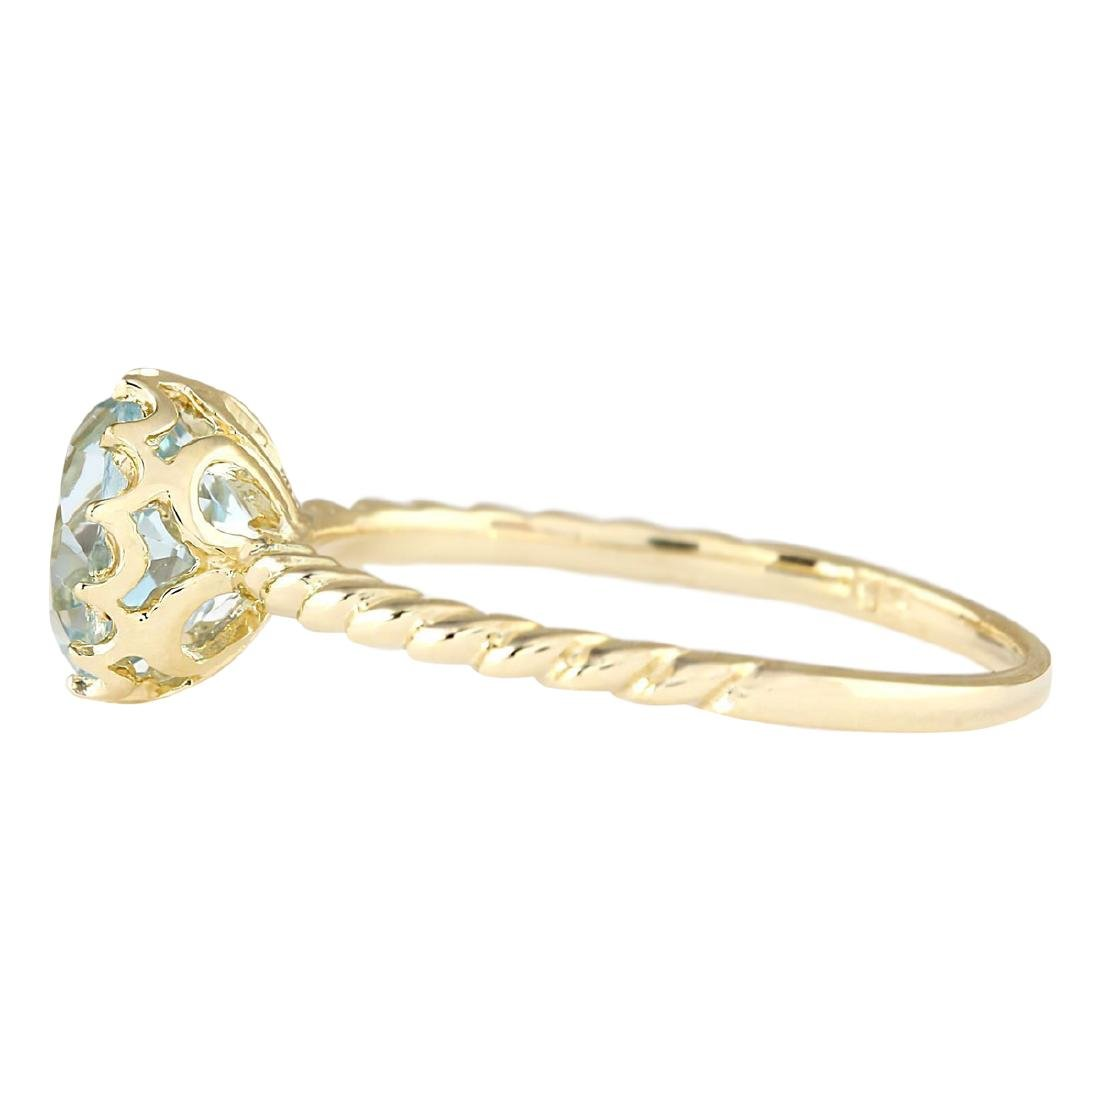 1.50 CTW Natural Aquamarine Ring In 18K Yellow Gold - 2